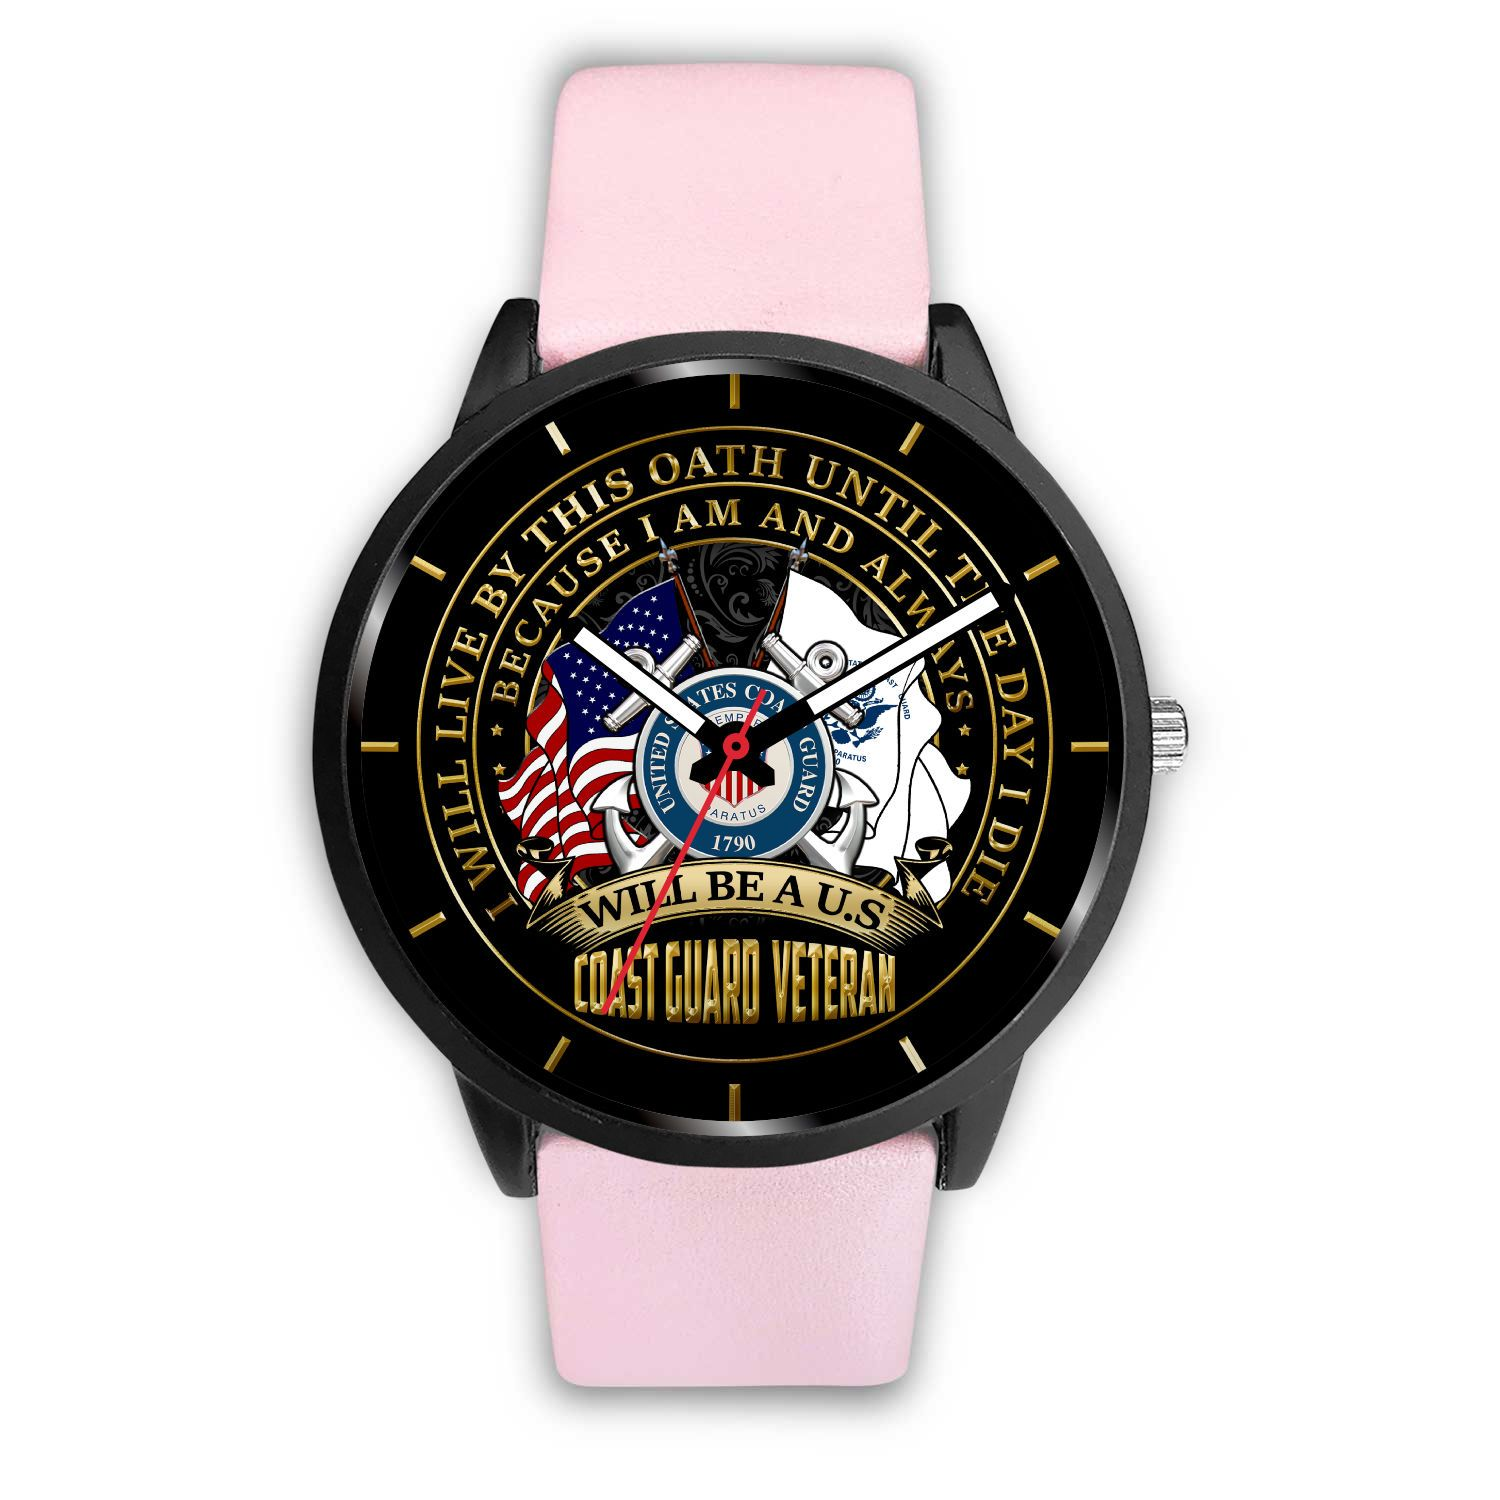 i-will-live_e187acba-2bd7-d57e-a0a7-5ae624499663 I WILL LIVE BY THIS OATH UNTIL THE DAY I DIE BECAUSE I AM AND ALWAYS WILL BE A U.S COAST GUARD VETERAN WATCH  %tag